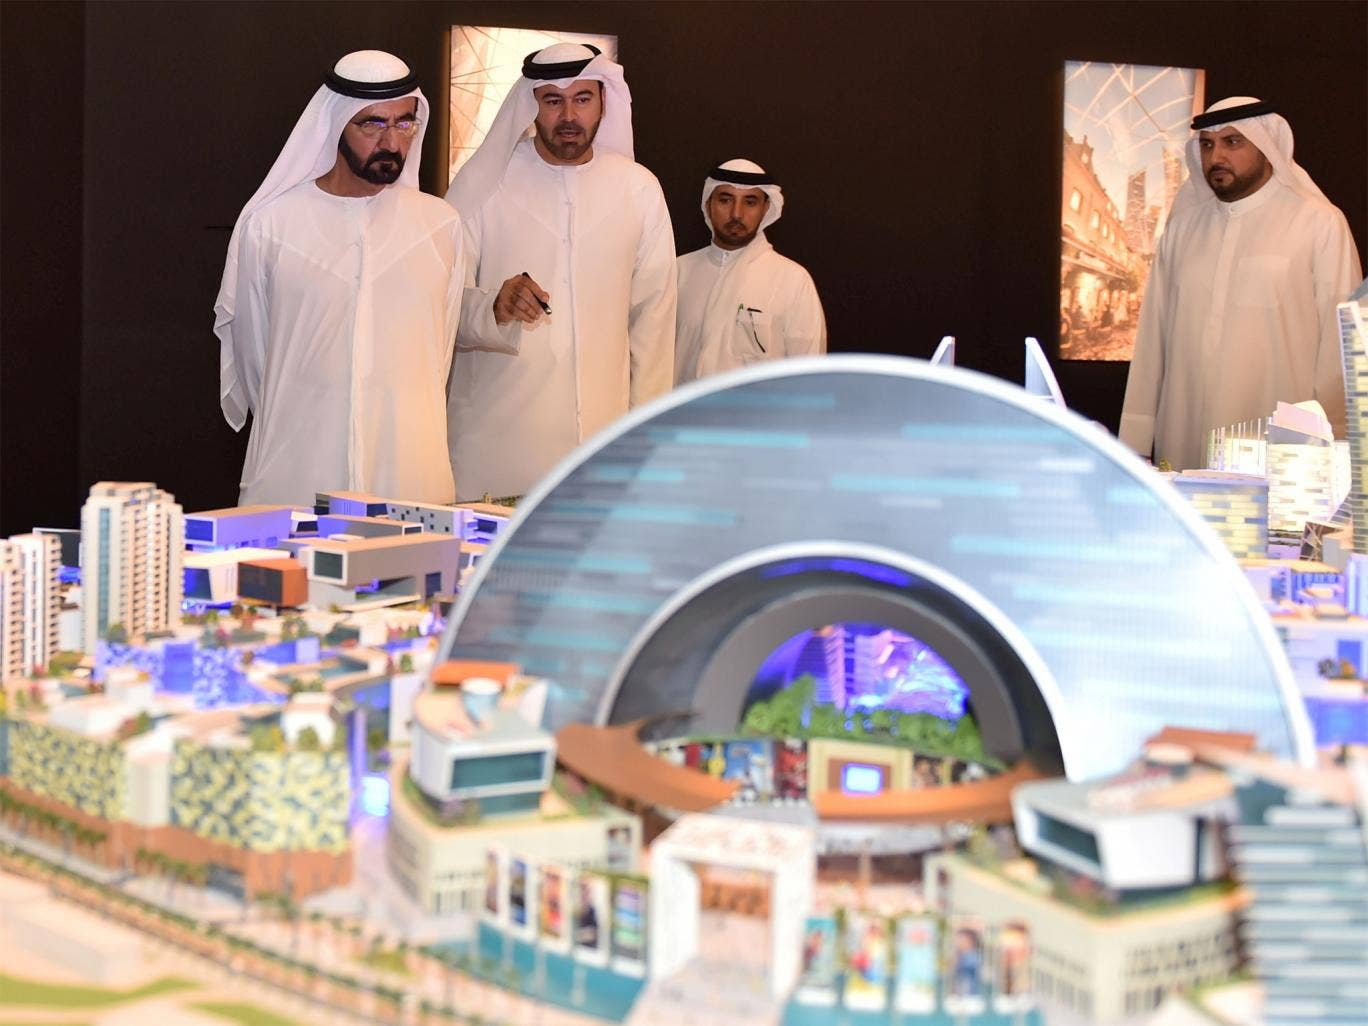 Sheikh Mohammed Bin Rashid al-Maktoum (left), ruler of Dubai, looking at a model of the 'Mall of the World' project during its presentation in Dubai